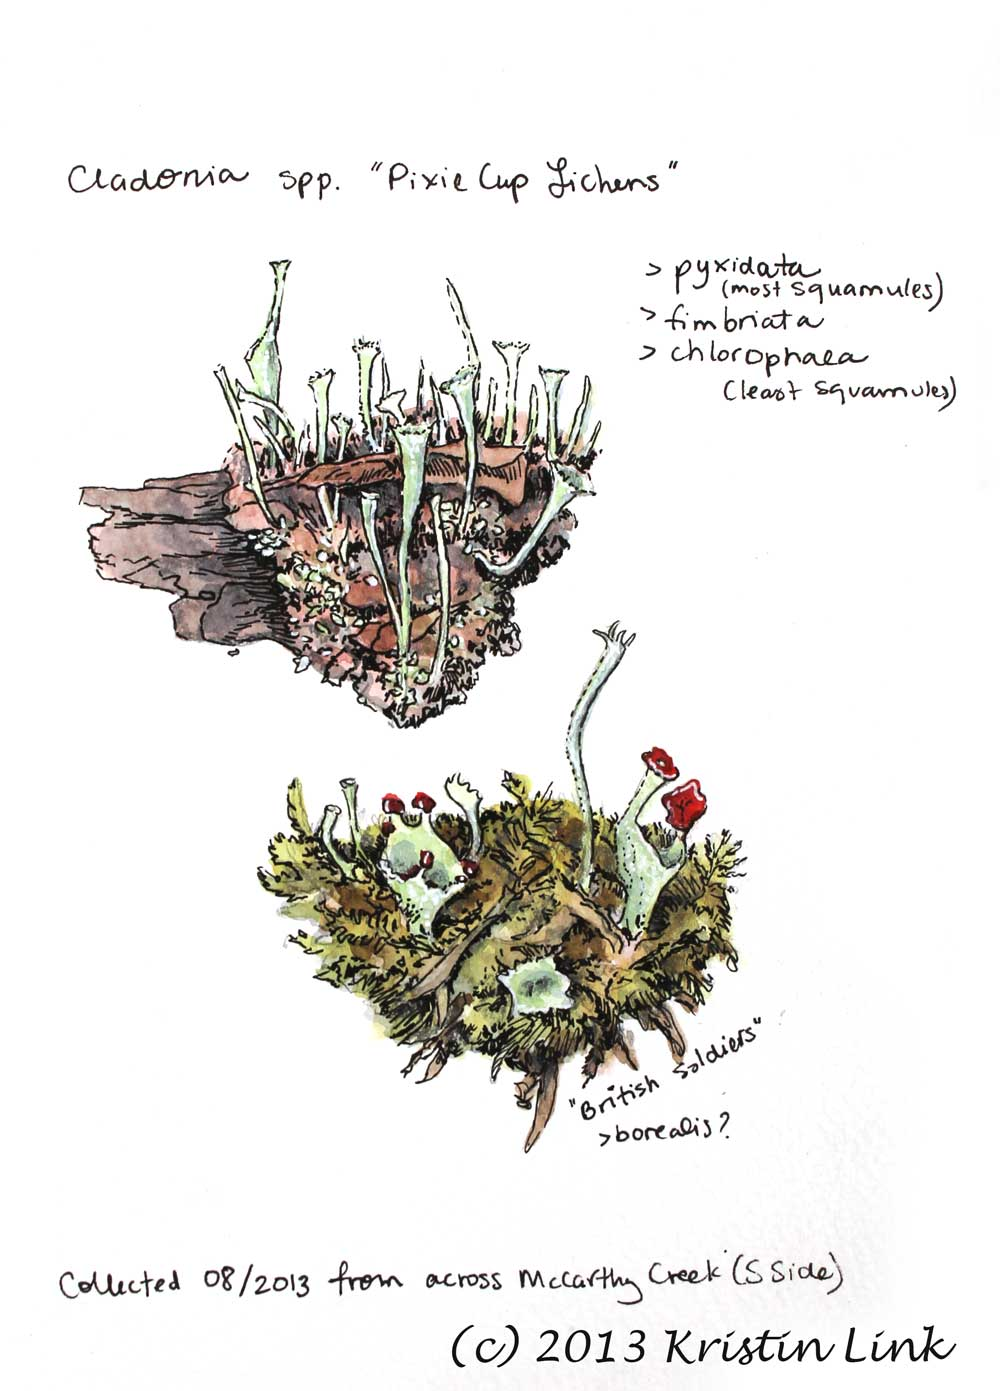 "Pixie Cup Lichens, 8.5 x 5.5"", watercolor and pen"